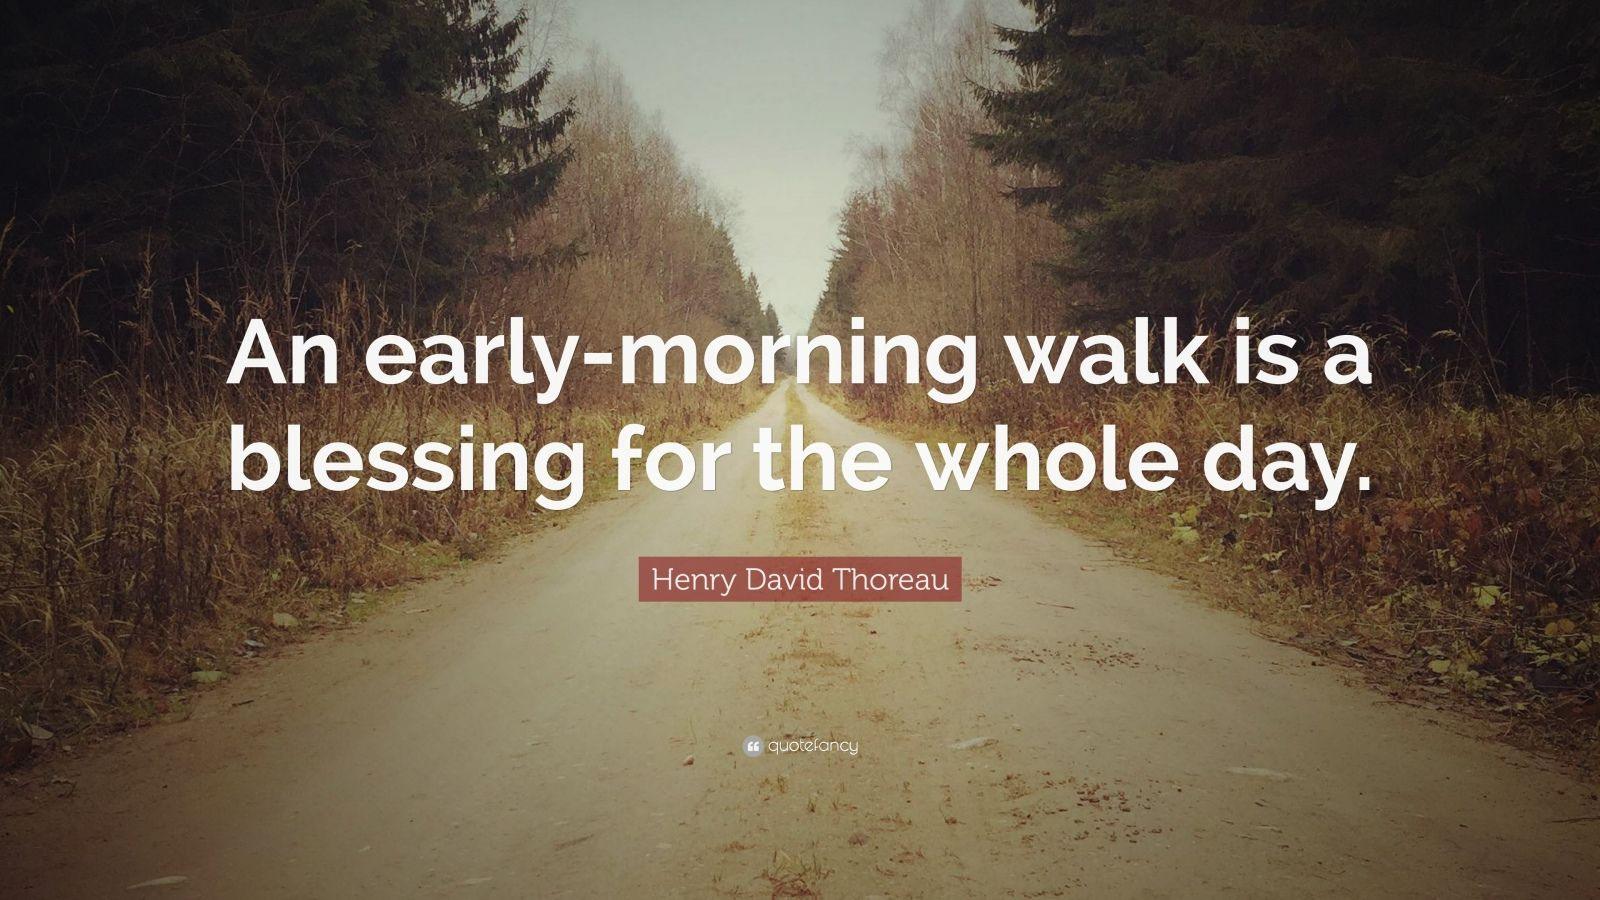 essay on an early morning walk 4 great advantages and health benefits of early morning walk routine which can be useful for to start thinking about morning walk read more at healthhnbt.